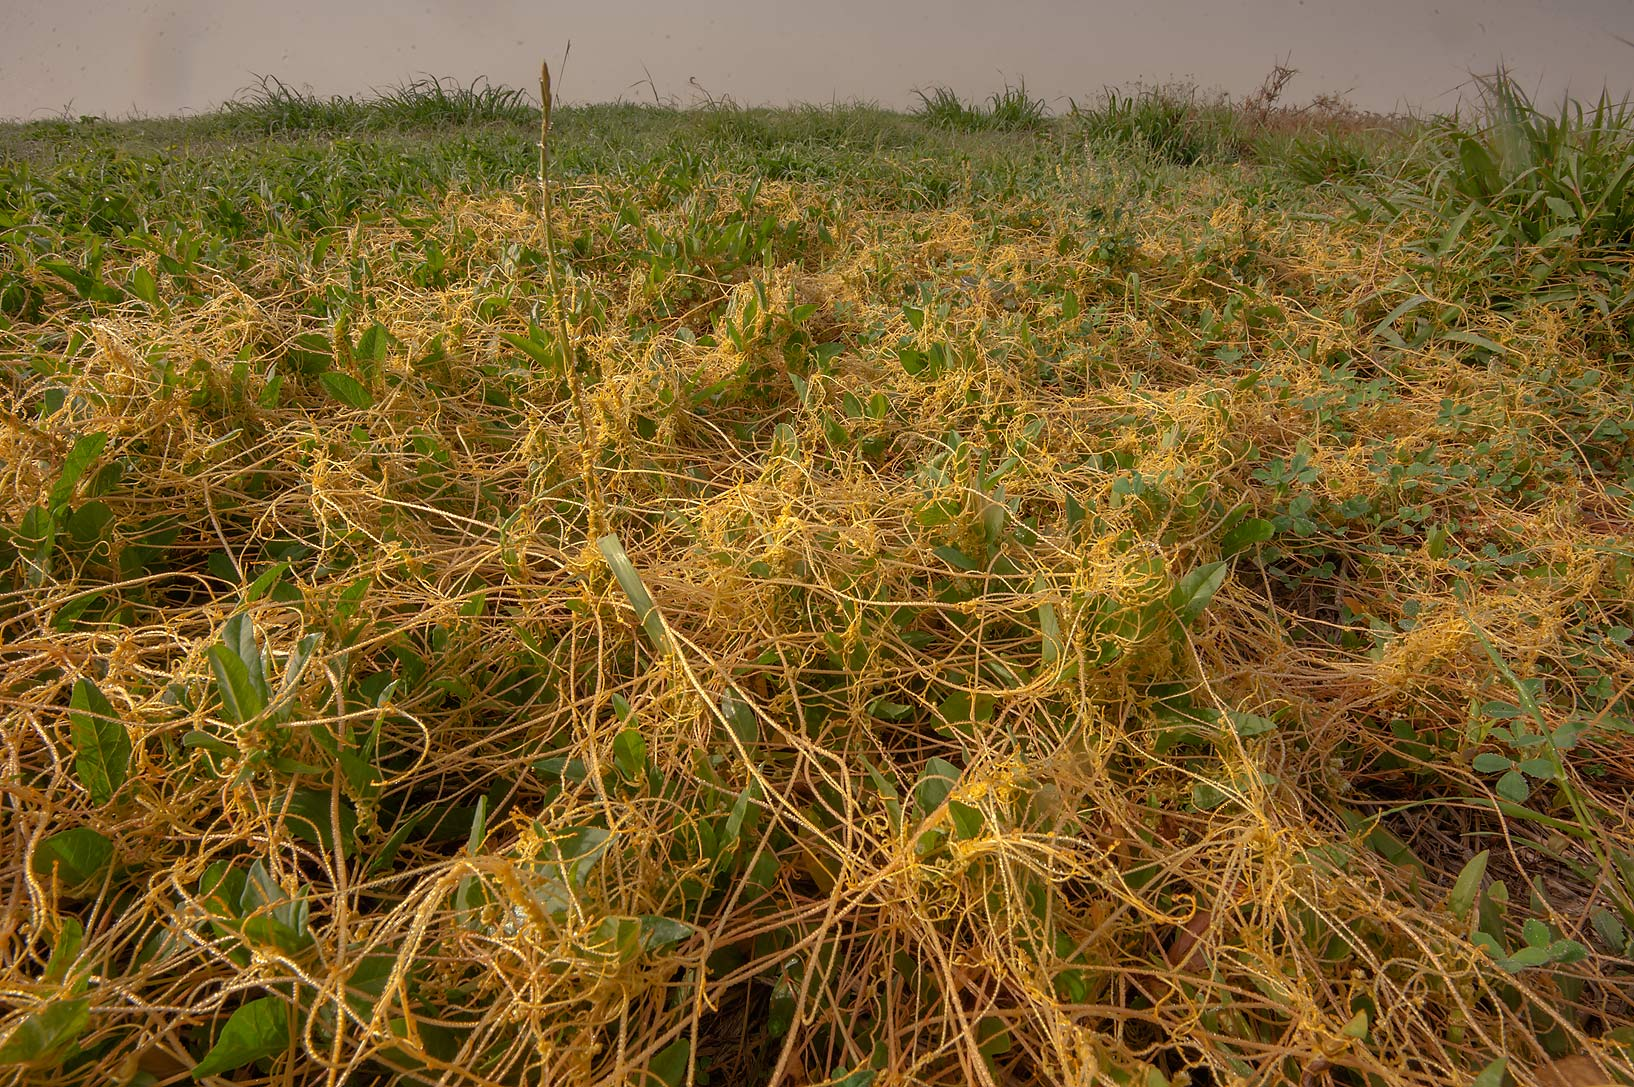 Golden dodder (Cuscuta campestris) spreading on a...in Irkhaya (Irkaya) Farms. Qatar